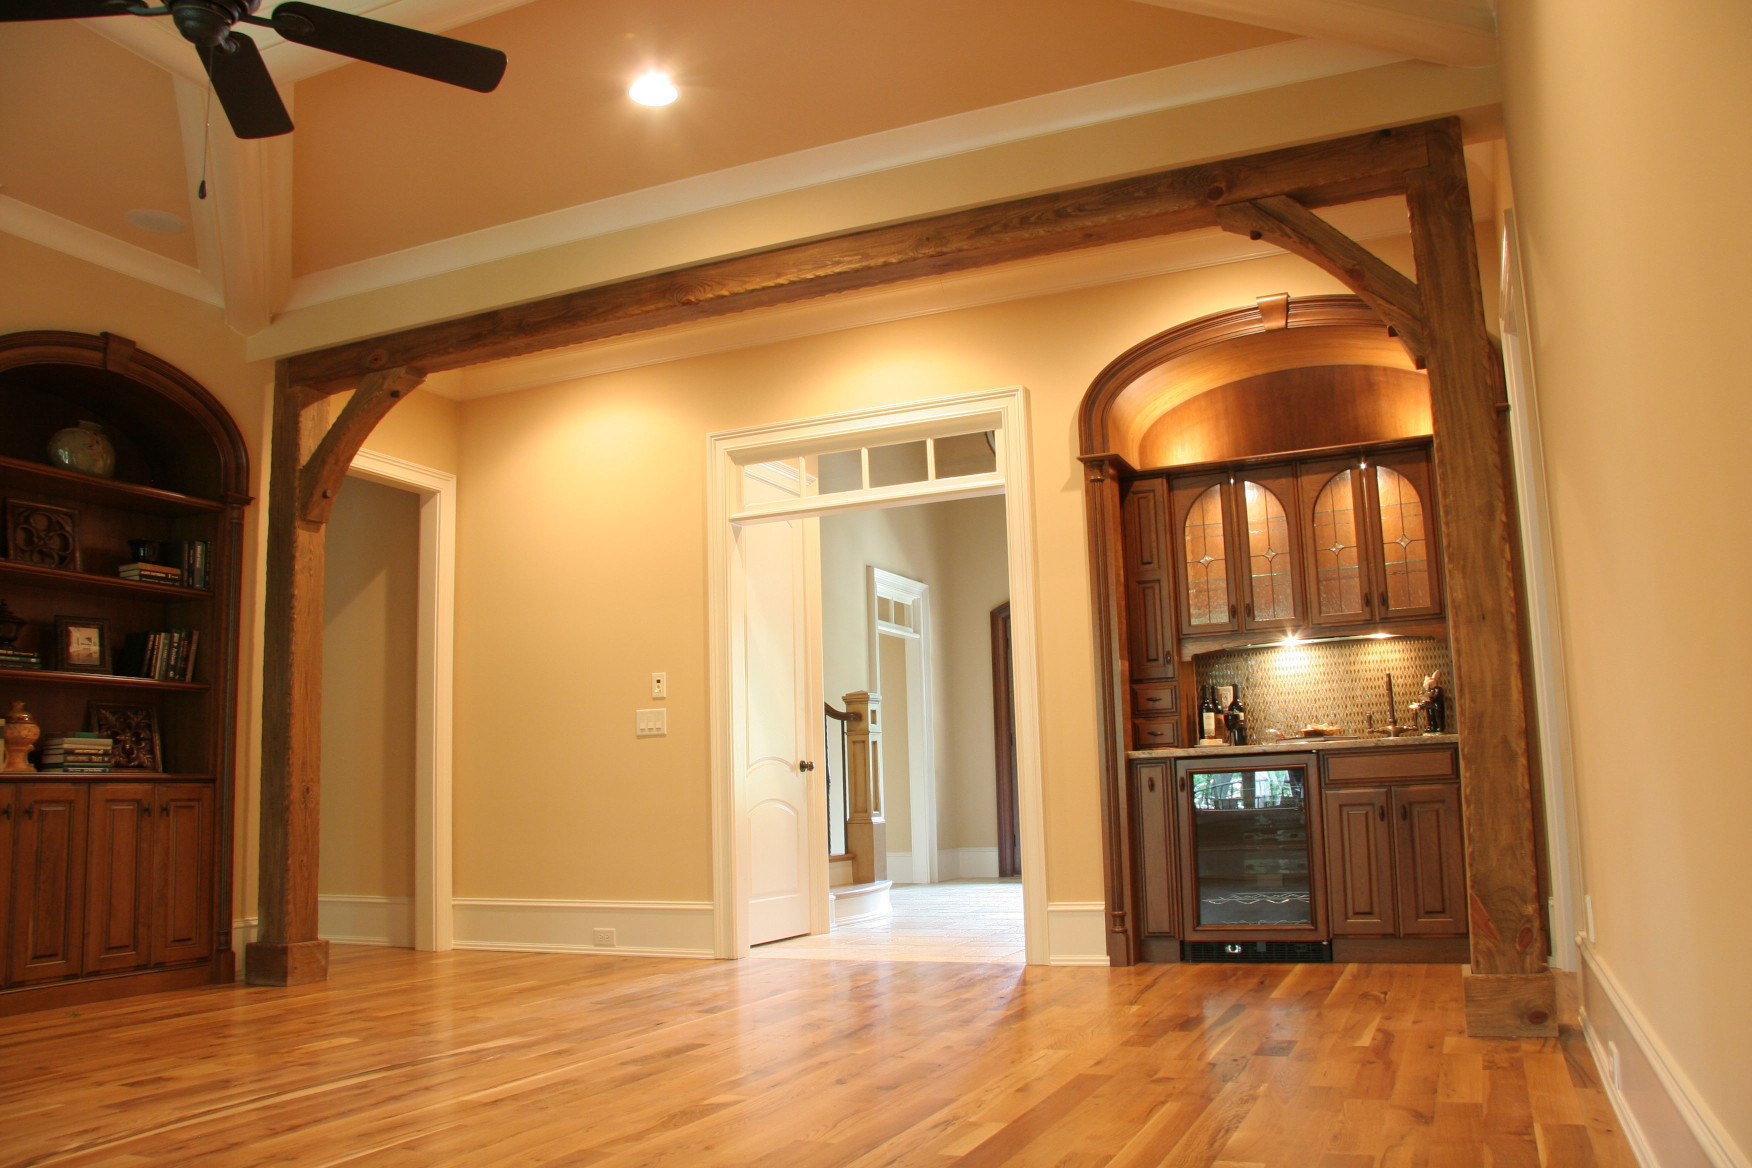 These wood beams, wood posts ,and wood braces are a great space definer in this great room.